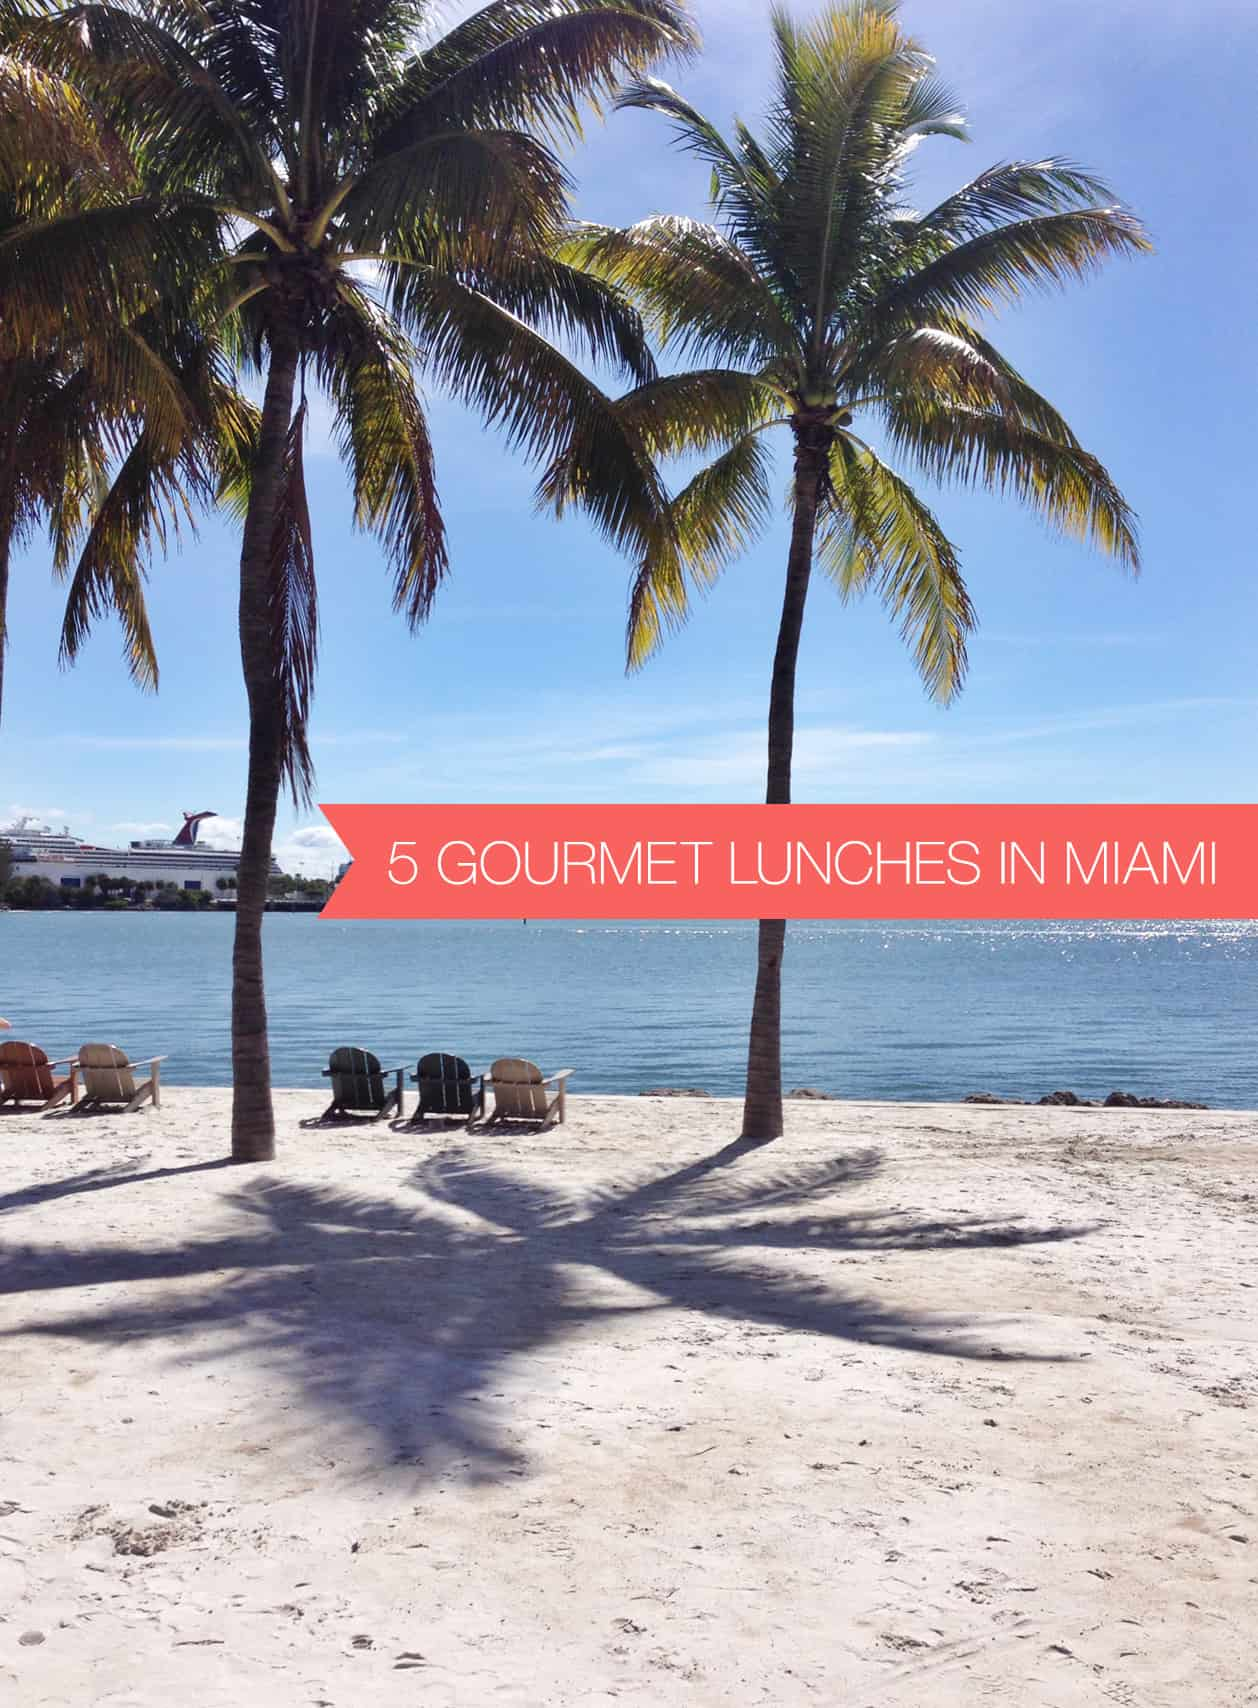 Five Gourmet Lunches in Miami